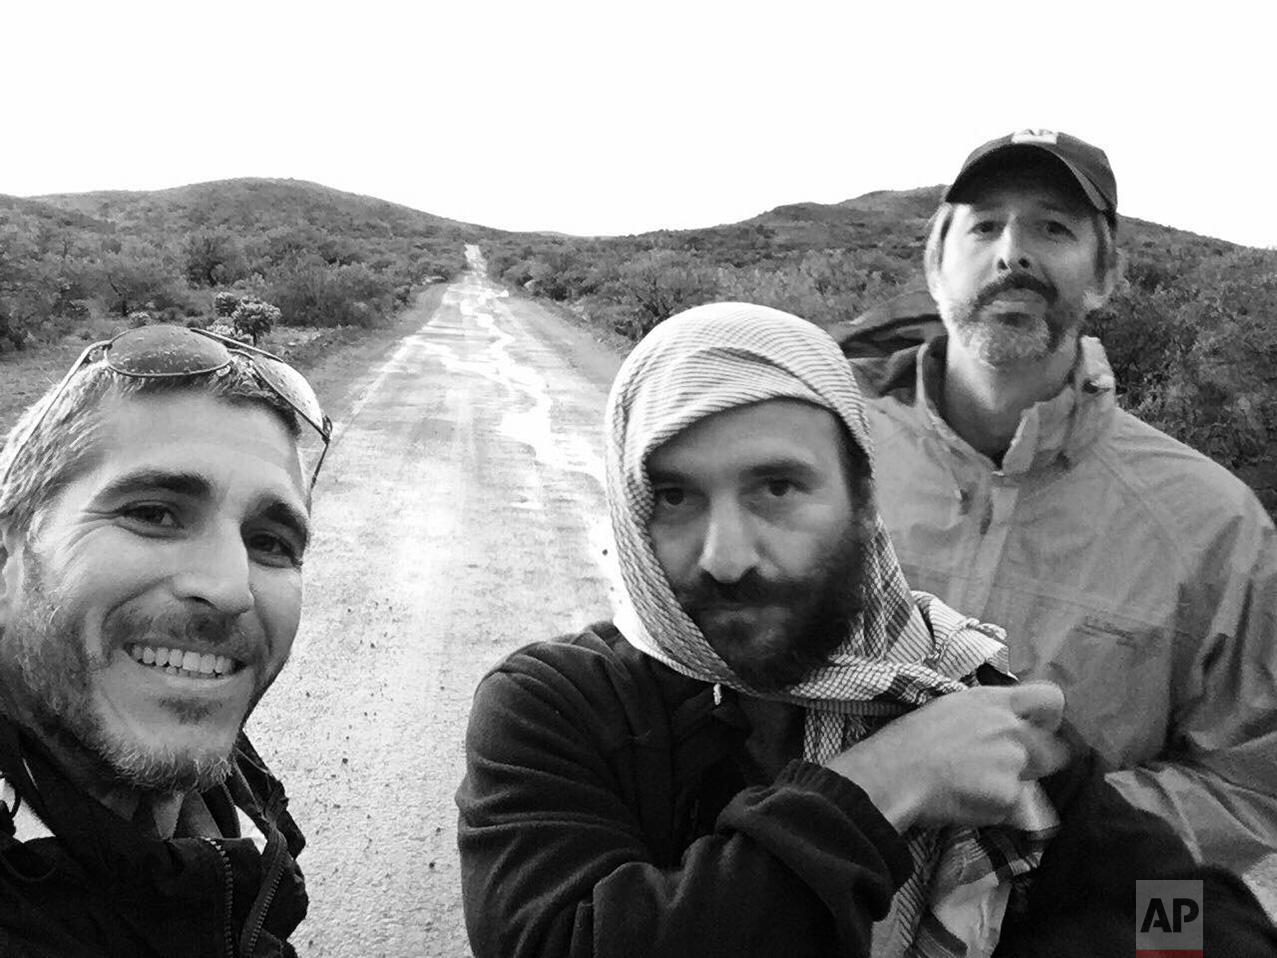 AP video journalist Brian Skoloff, from left, AP photographer Rodrigo Abd and AP correspondent Christopher Sherman, pose fro a group photo on the outskirts of Sasabe, in the Mexican state of Sonora, near the border with Arizona, April 1, 2017. (AP Photo/Brian Skoloff)